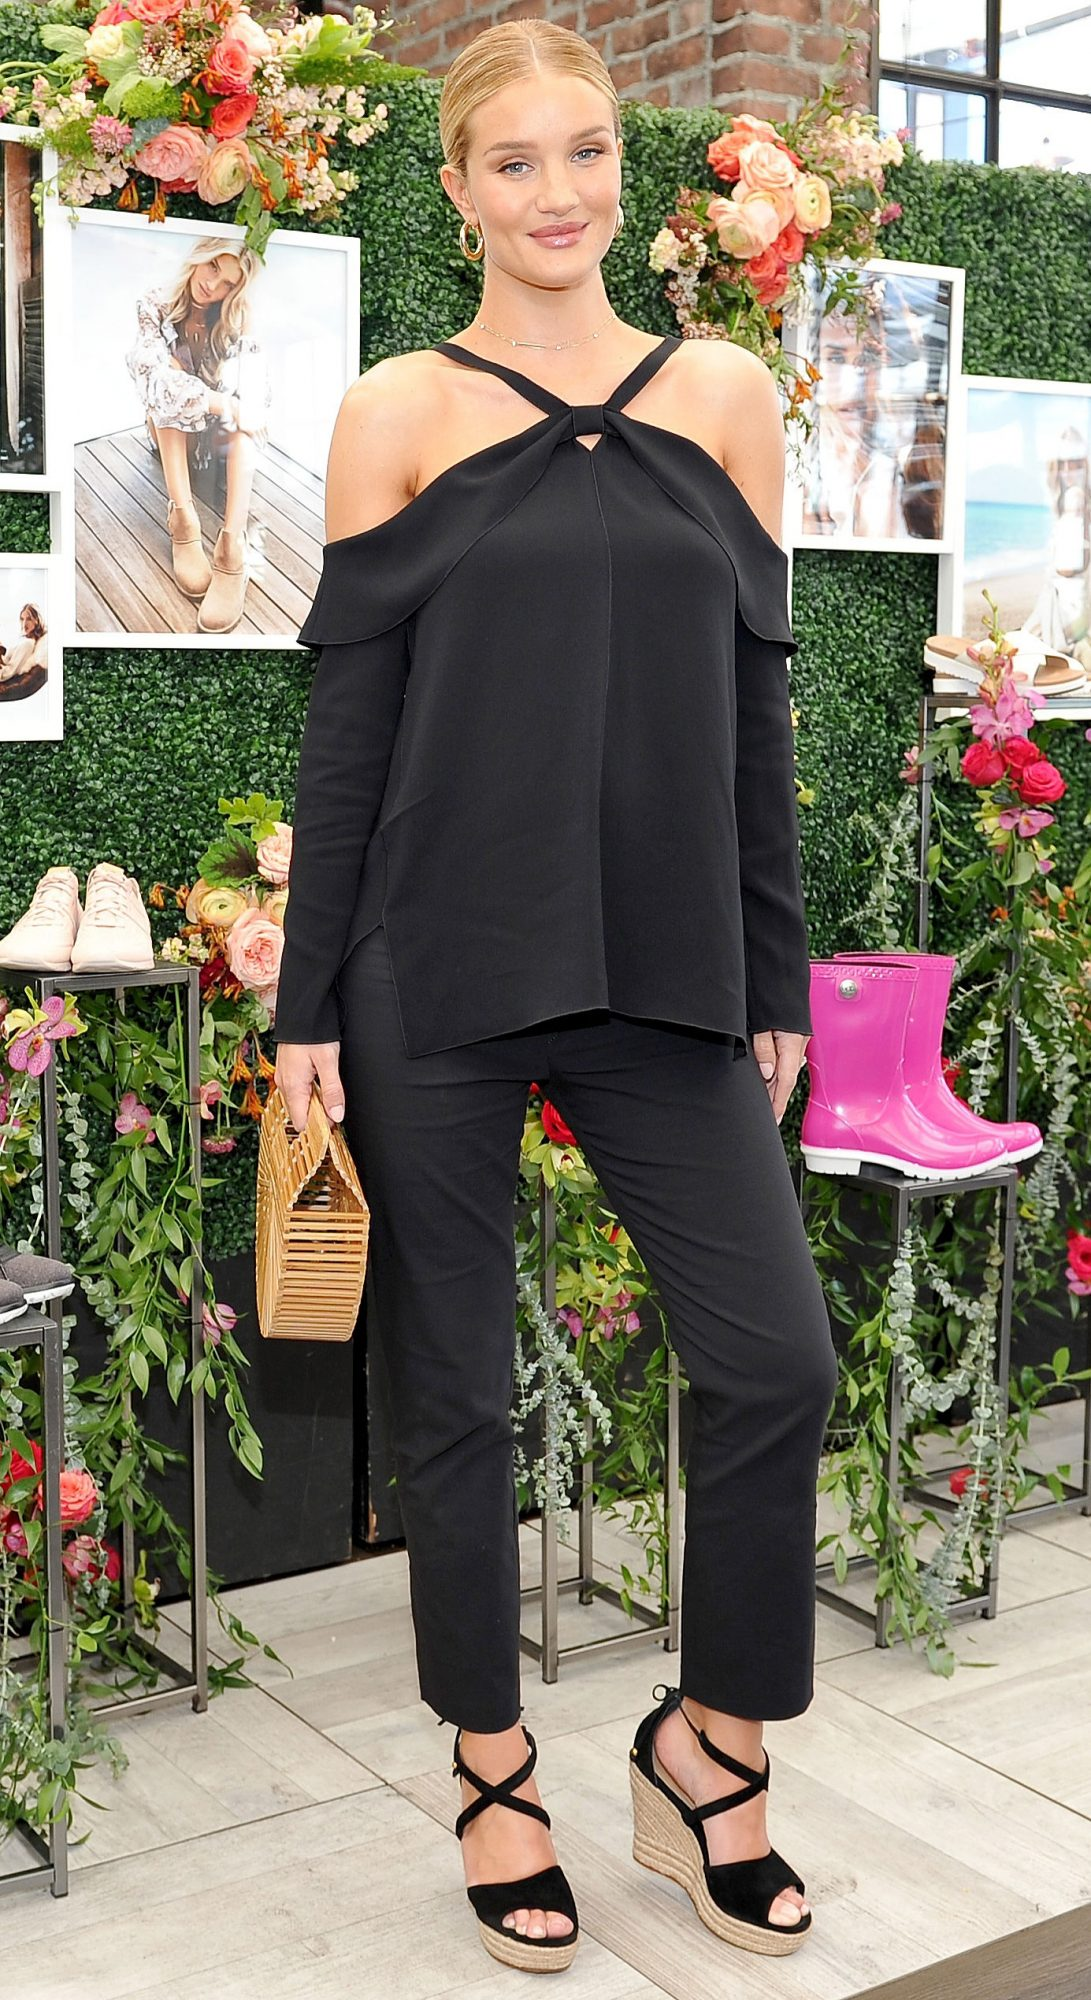 Rosie Huntington-Whiteley and Rachel Zoe Host UGG SS17 Campaign Luncheon at Catch LA.